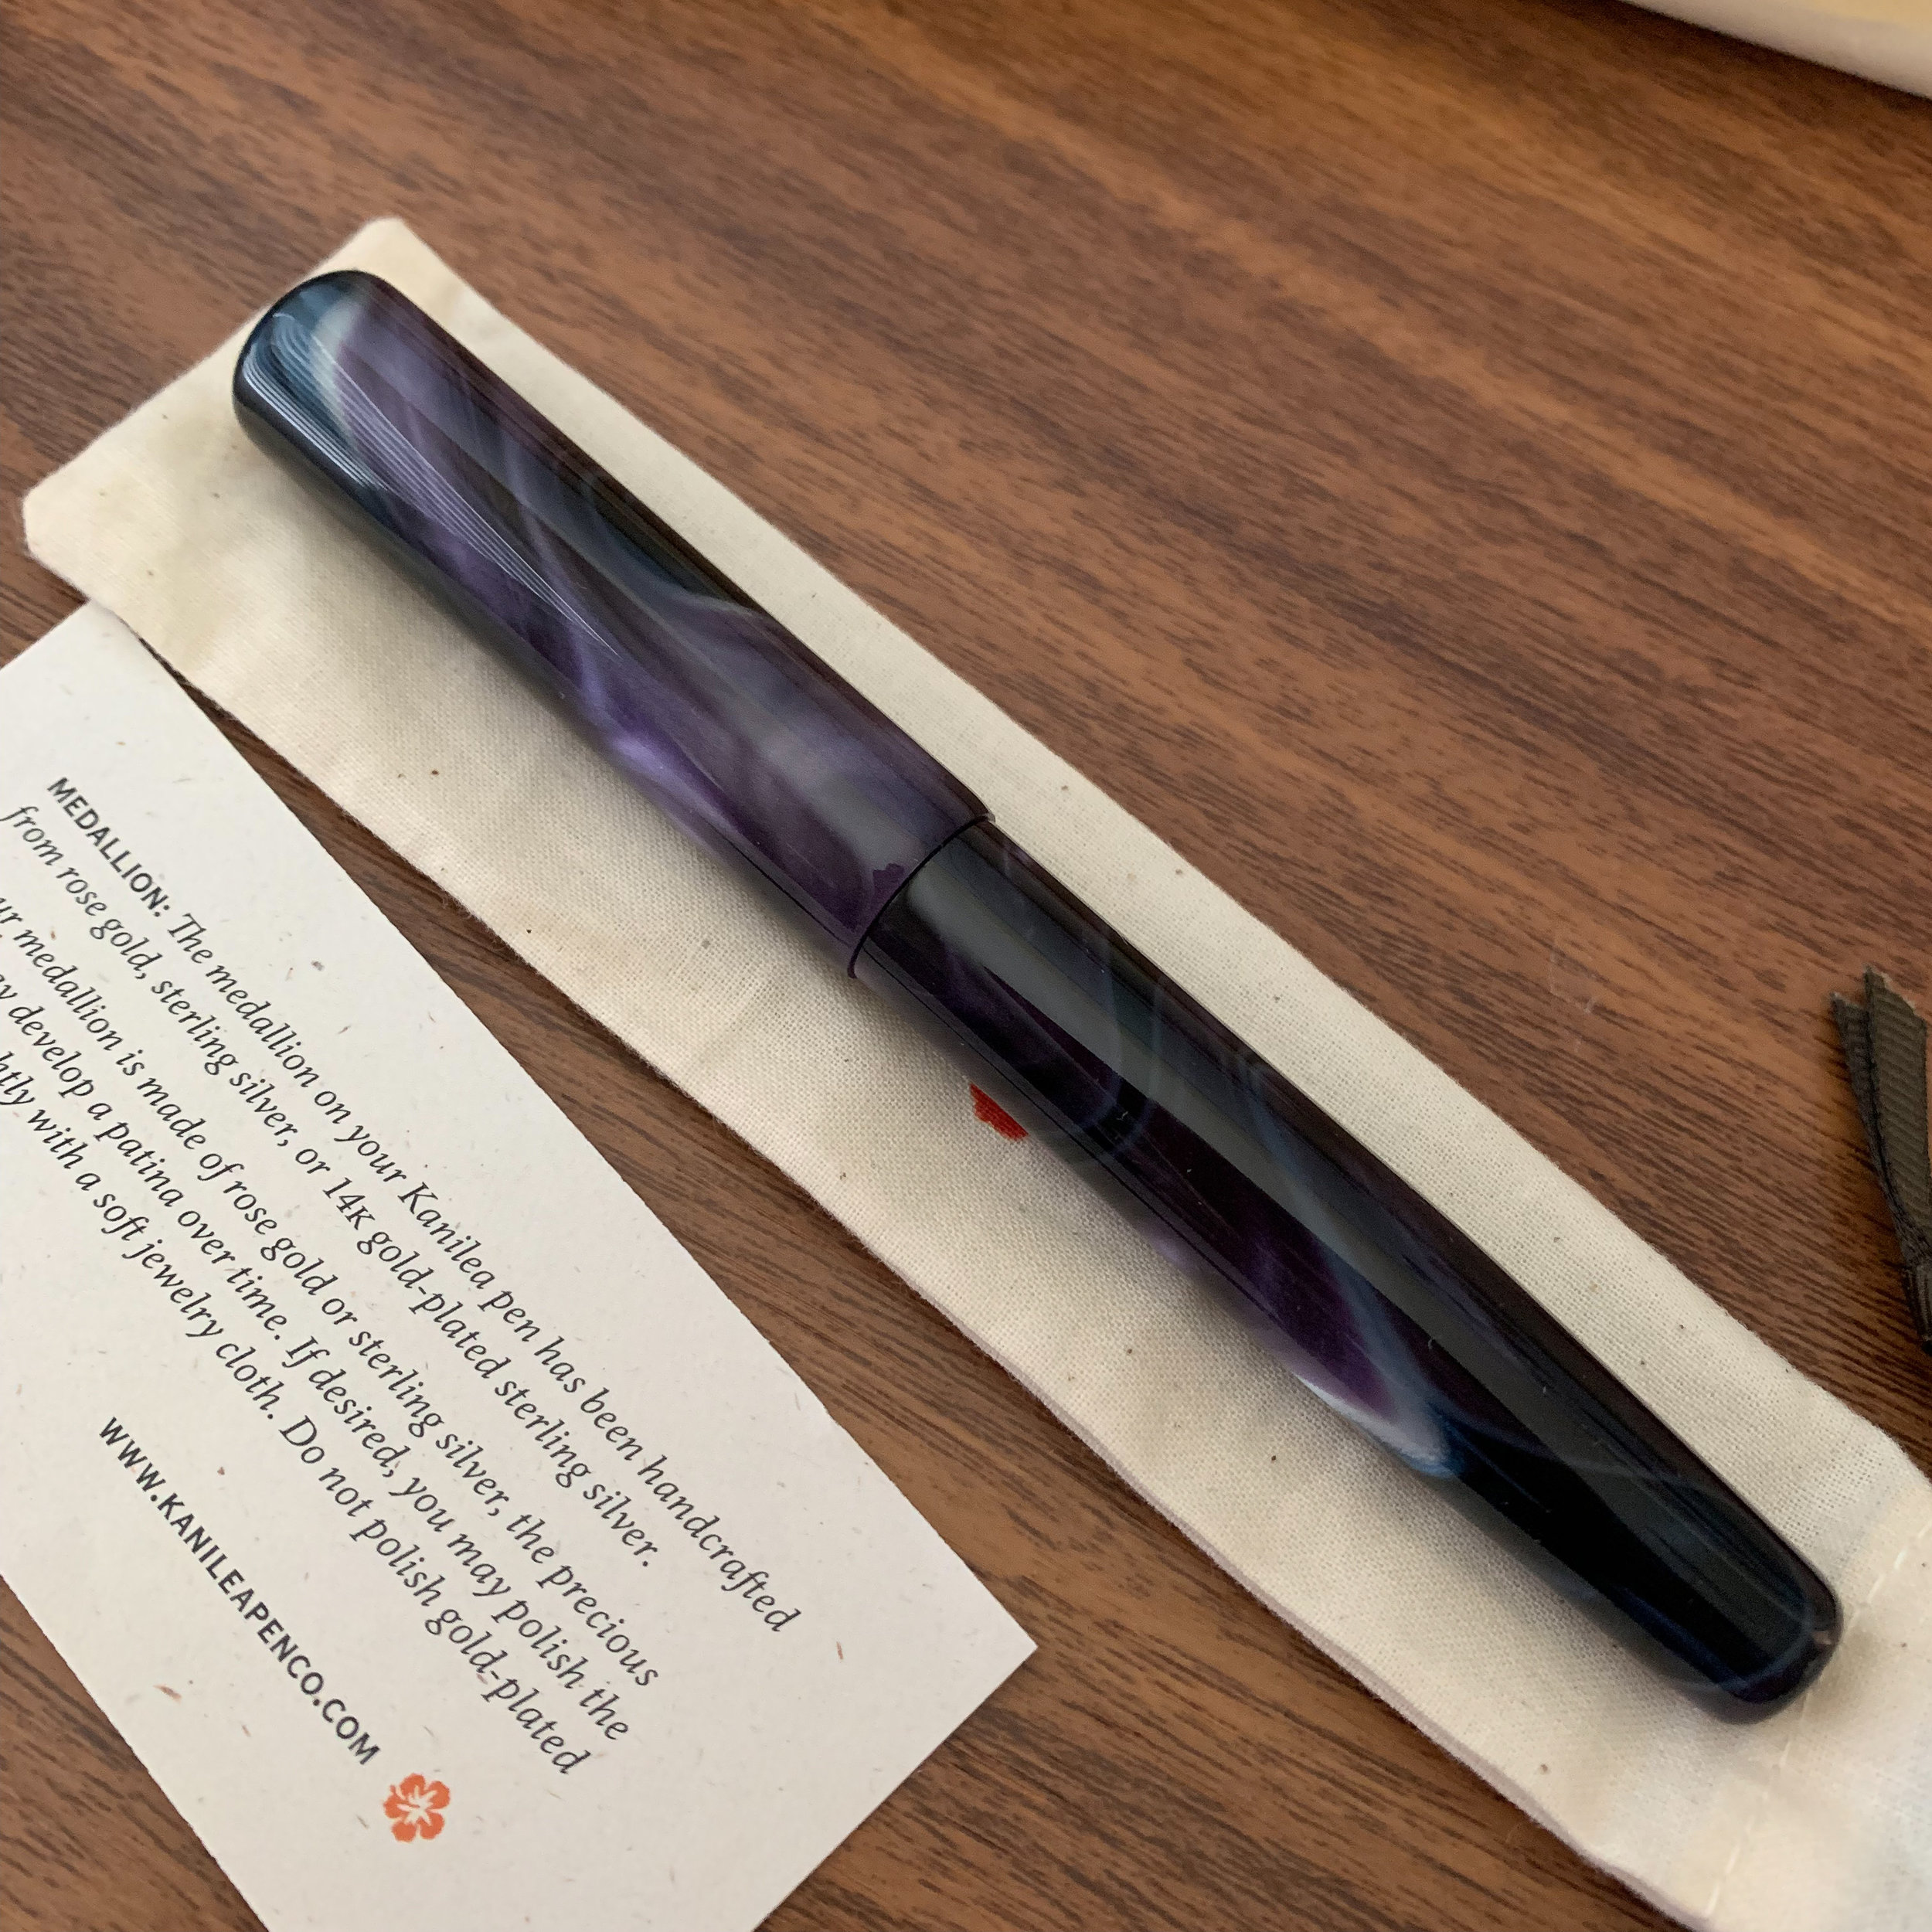 The flip side of the Aolani. Note how the swirls on one side of the pen are quite dark, but on the other side, shown here, you get more of the gray, purple, and iridescent silver.